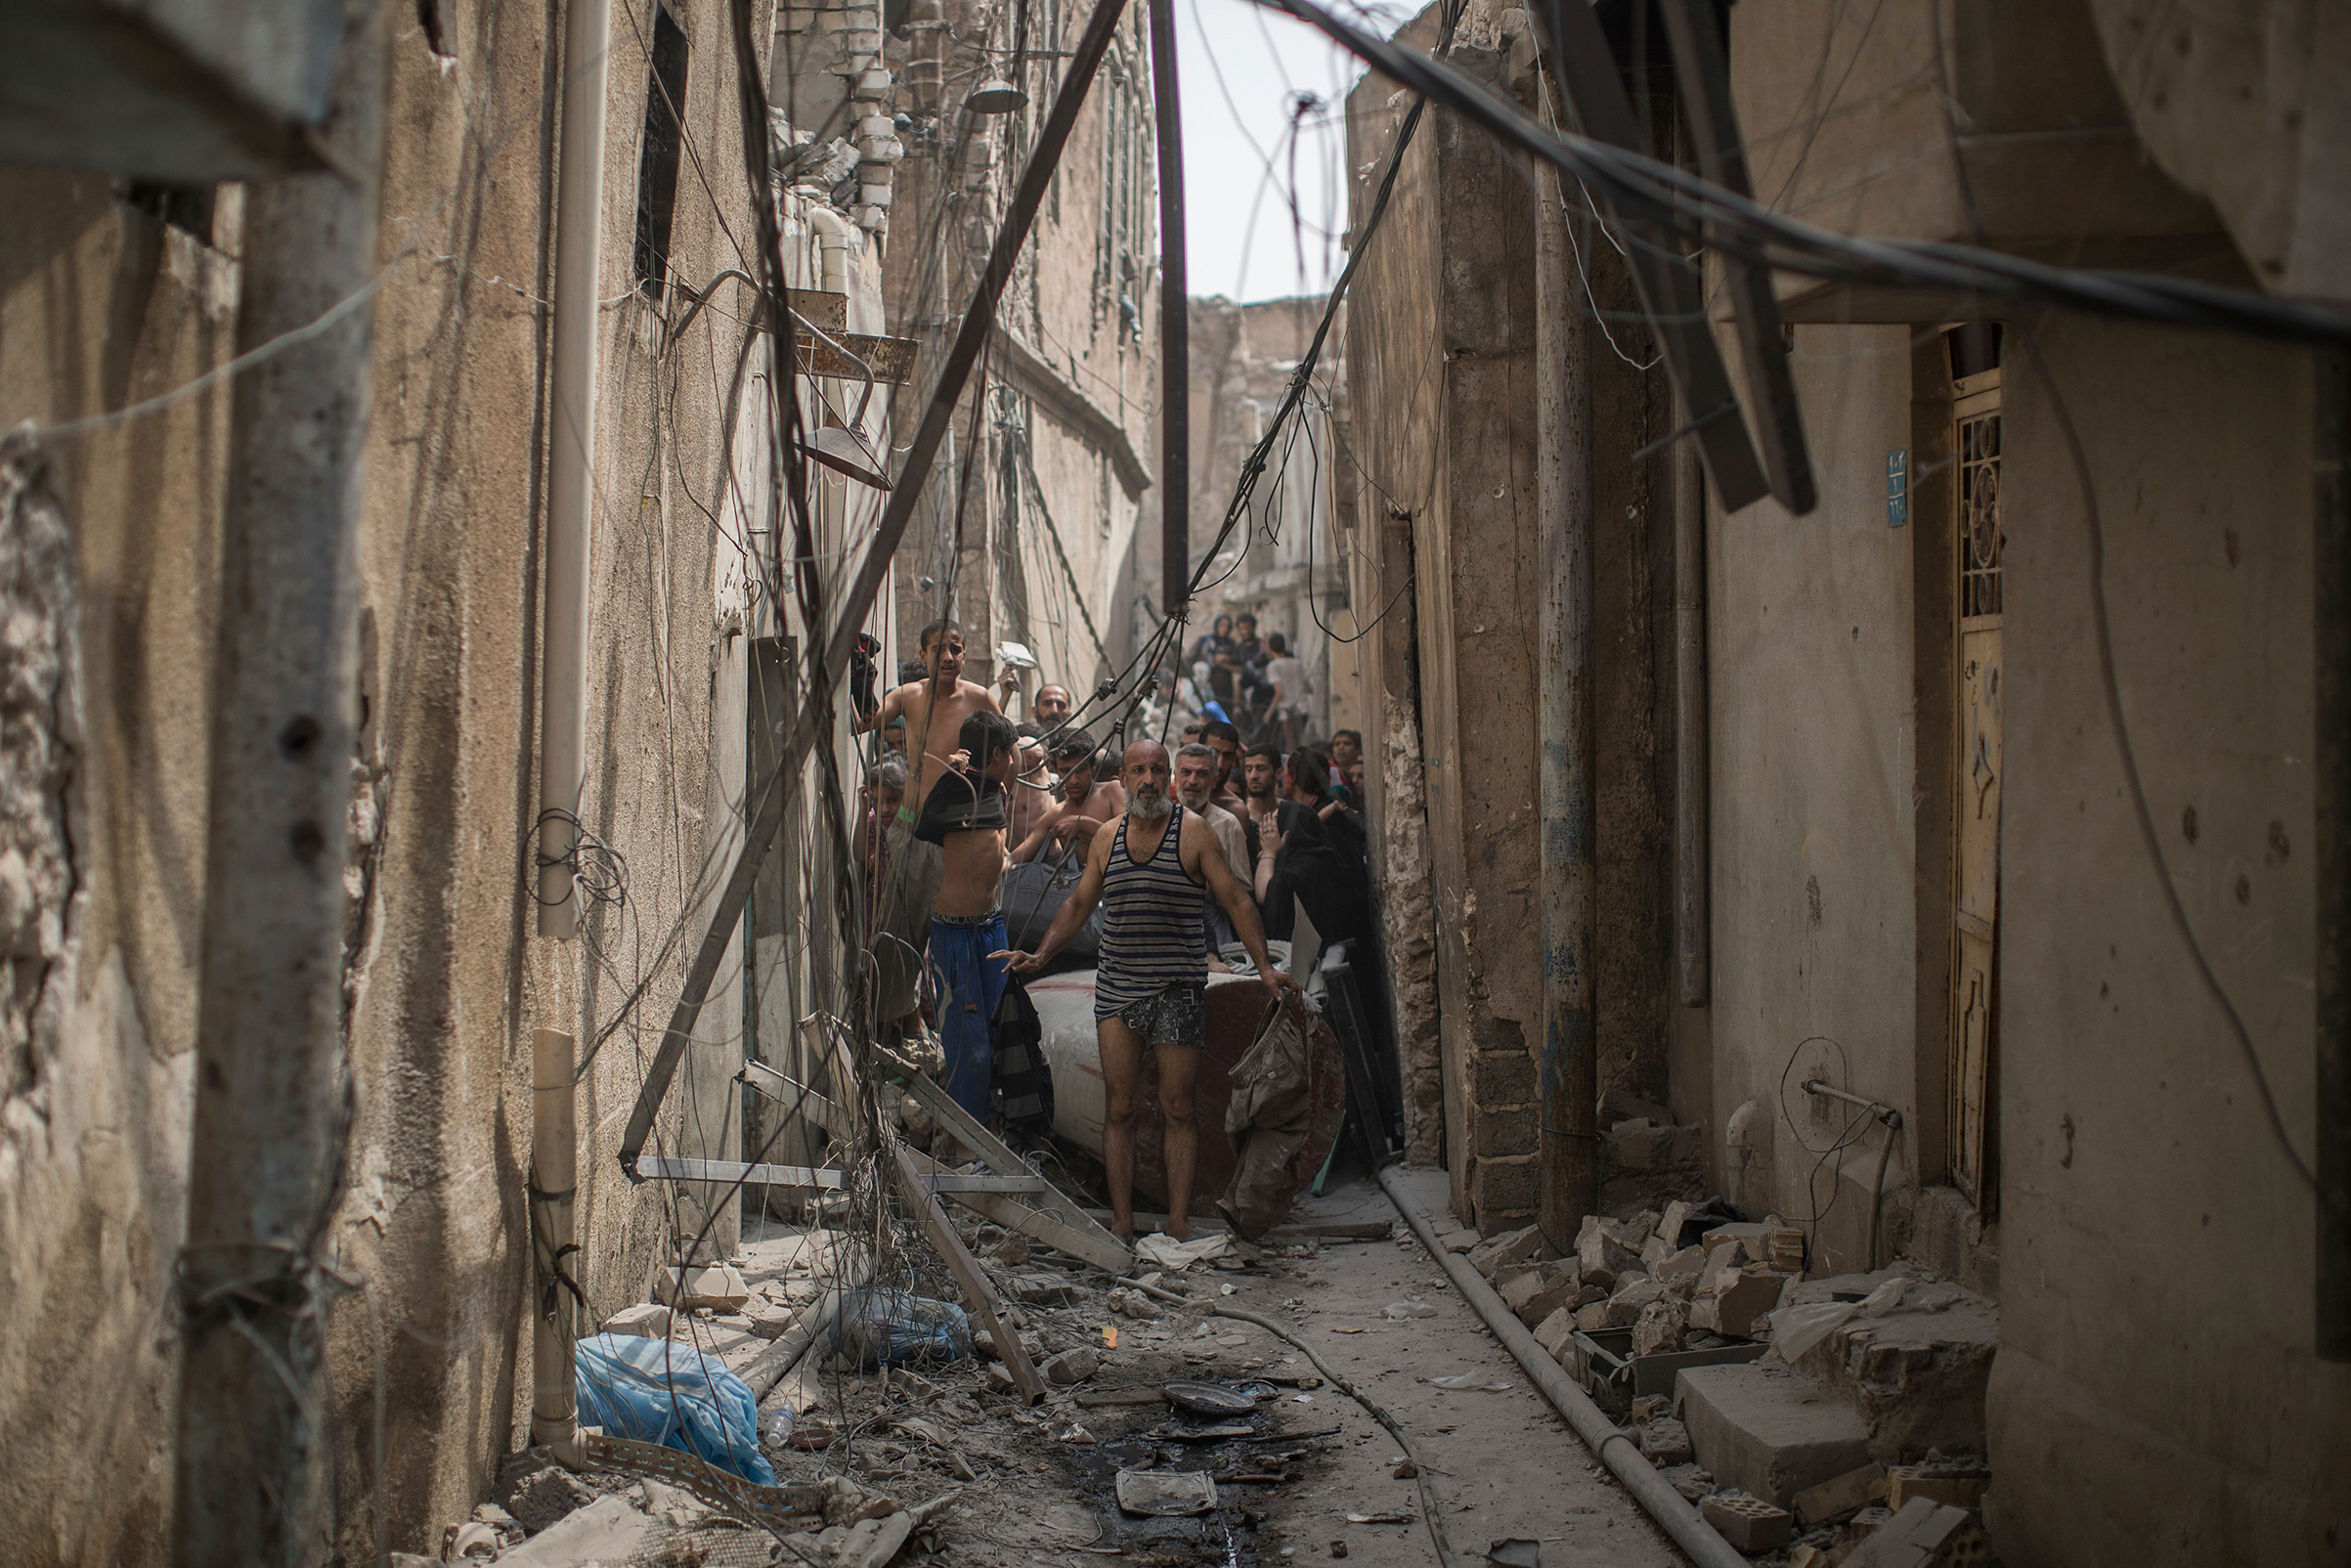 Civilians trying to flee get undressed to be checked for explosives after suicide bombers exploded as Iraqi forces continue their advance against Islamic State militants in the Old City of Mosul, Iraq, on July 3, 2017.